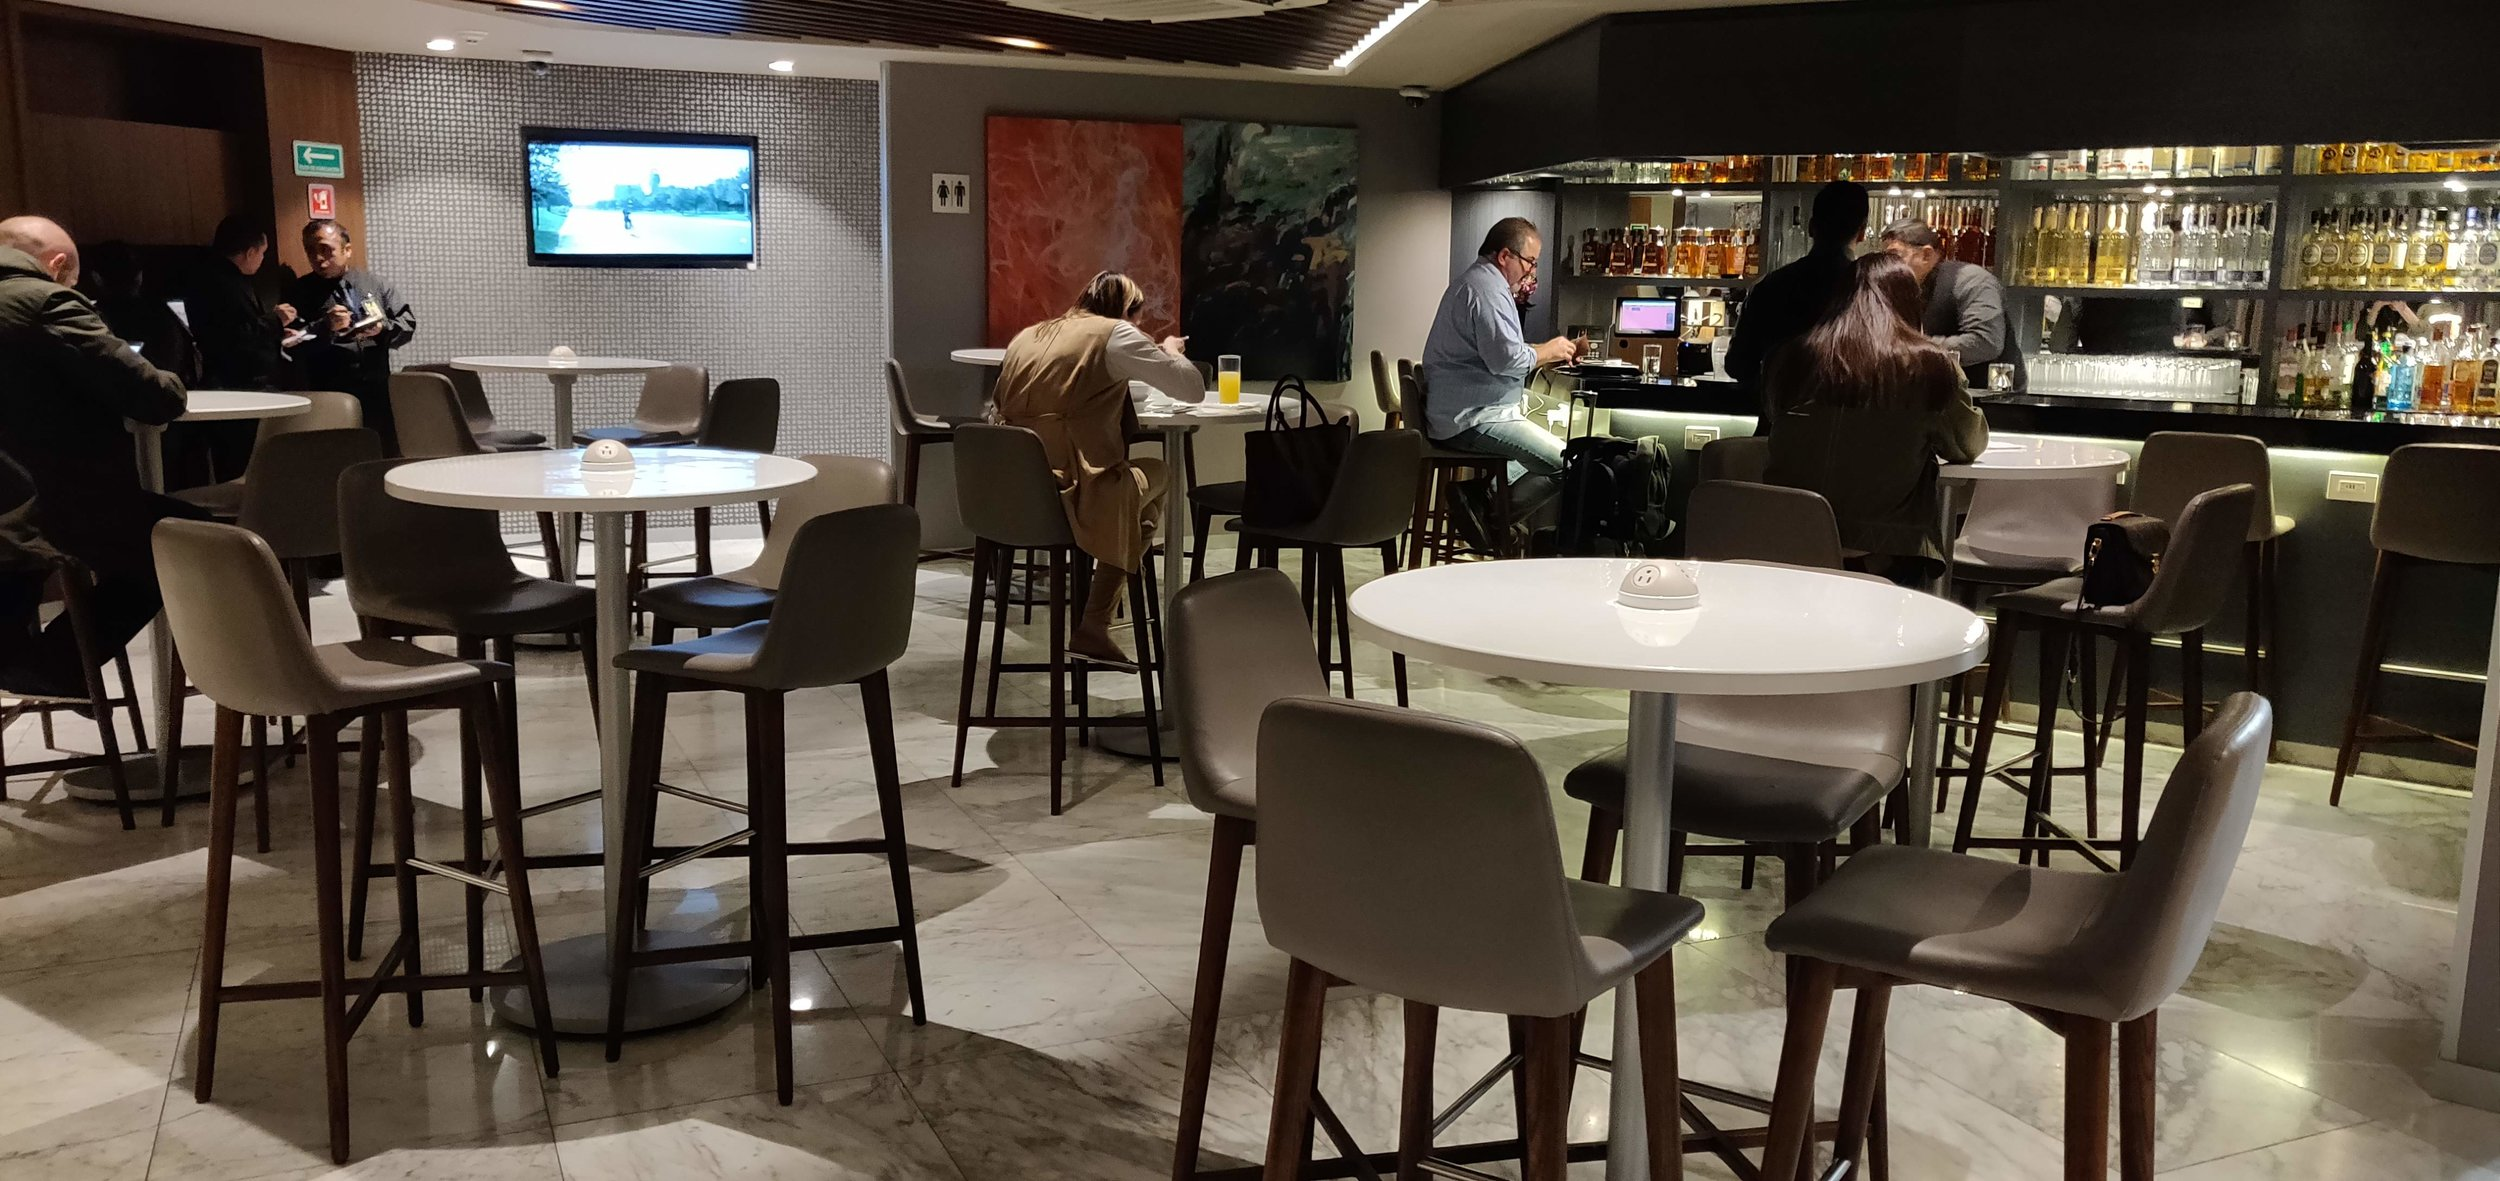 Centurion Lounge Mexico City - Downstairs Seating